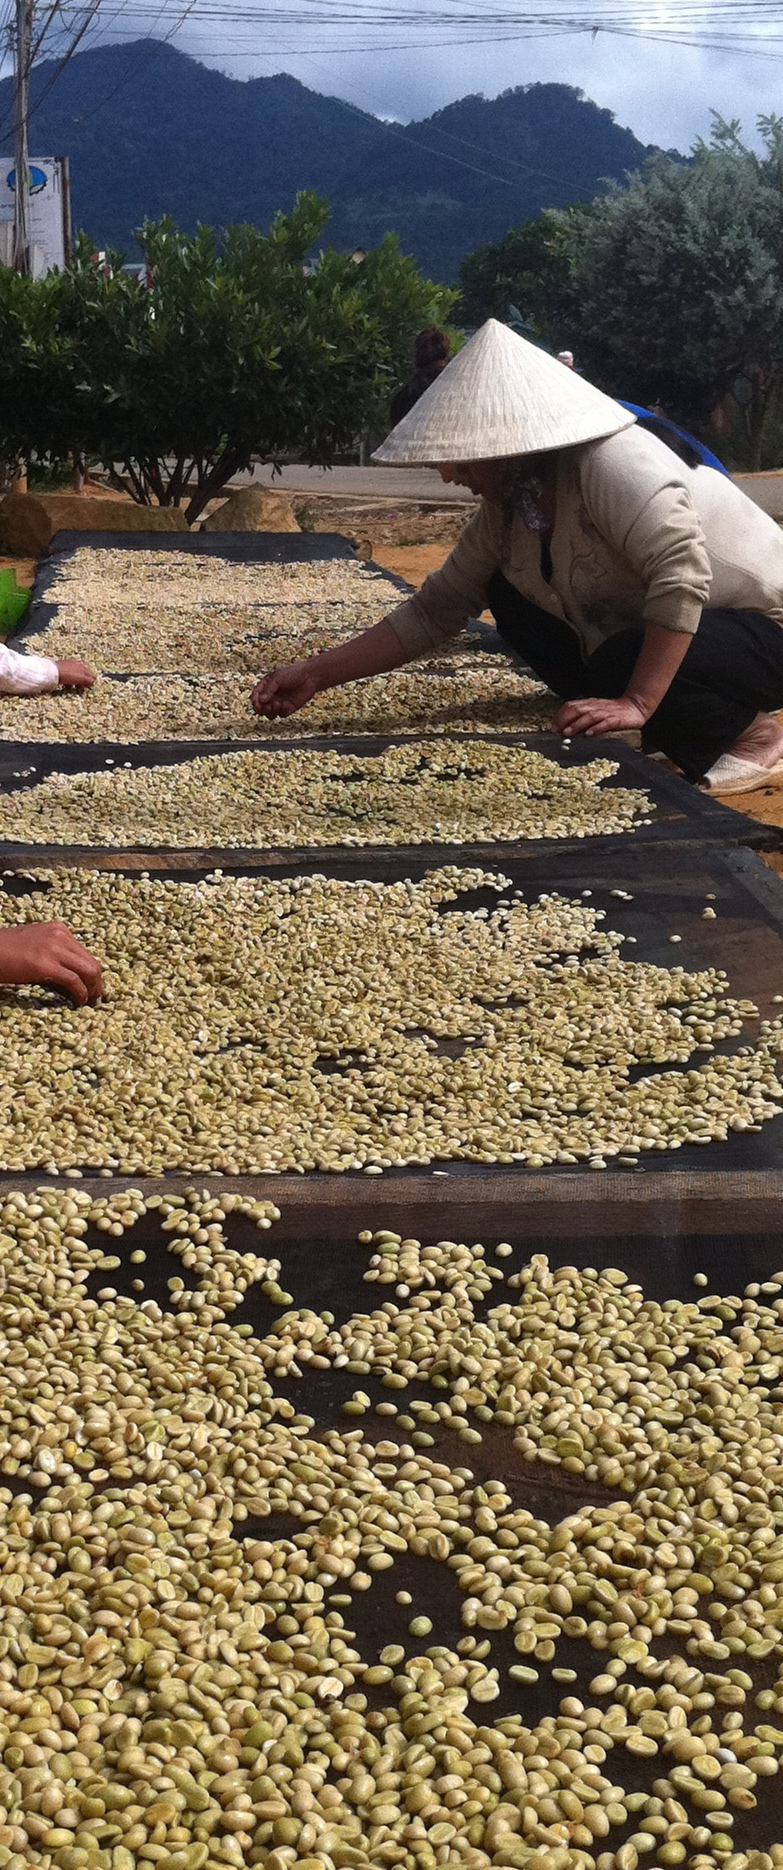 Drying coffee under the sun.